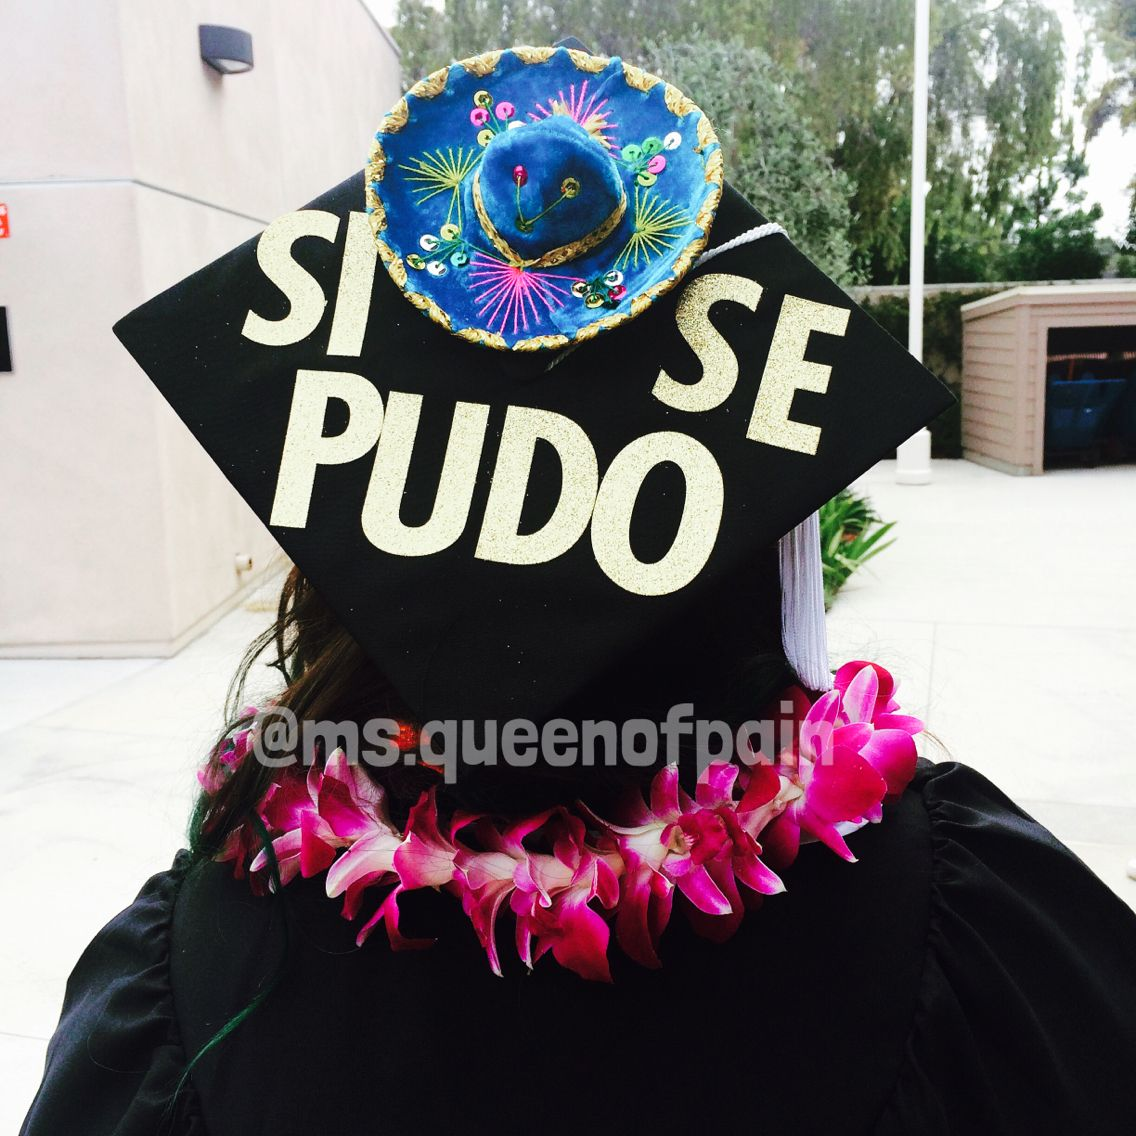 Decorating Graduation Cap Ideas For Teachers - Heritage graduation cap chicana proud csuf graduationcap gradcap co2015 decorated graduation capsgraduation cap designsgraduation